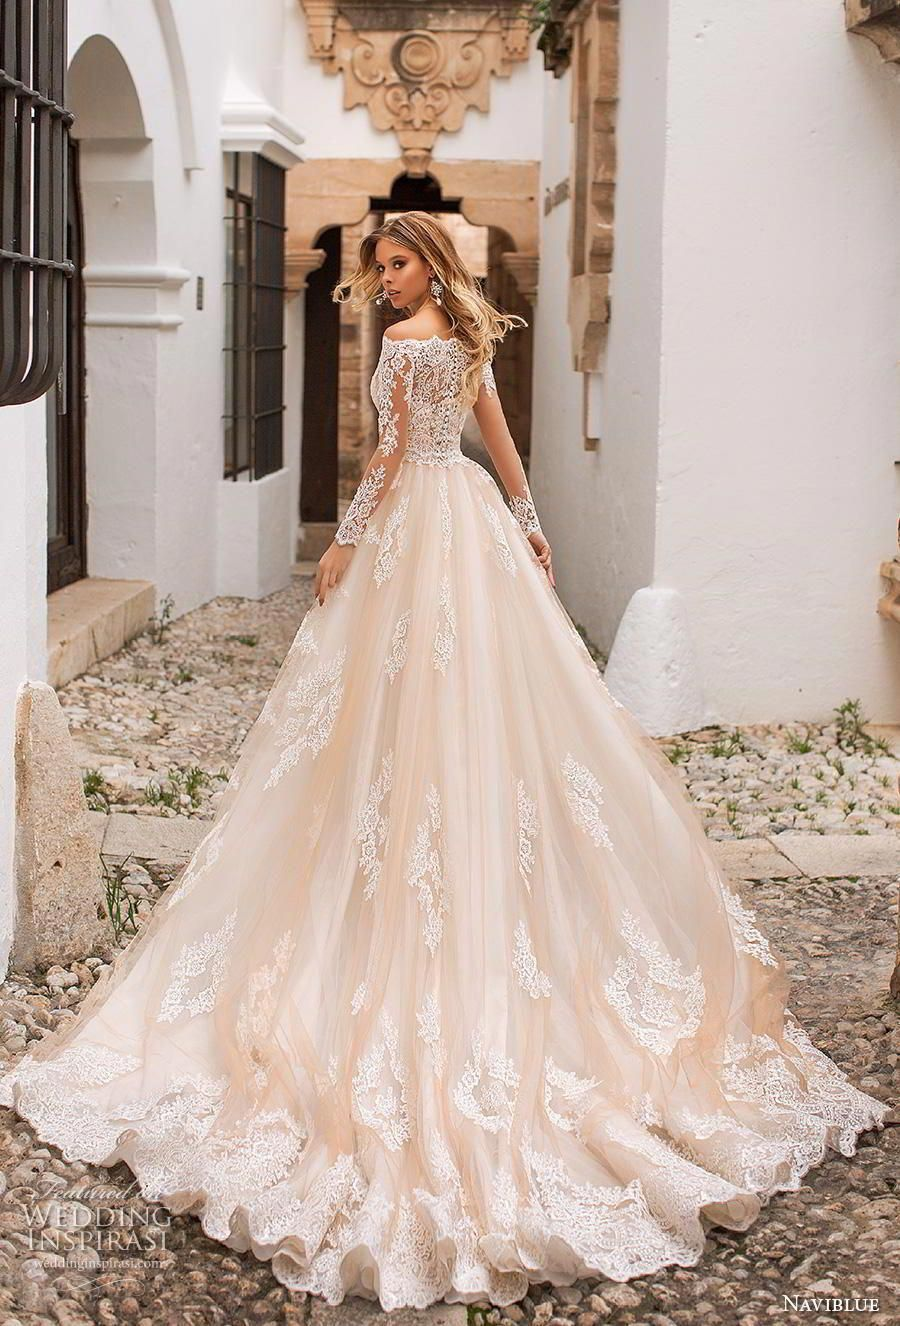 Lace Wedding Dresses Instead Of Spending An Excessive Amount Of For The Large Wedding Pregnant Wedding Dress Lace Mermaid Wedding Dress Long Wedding Dresses